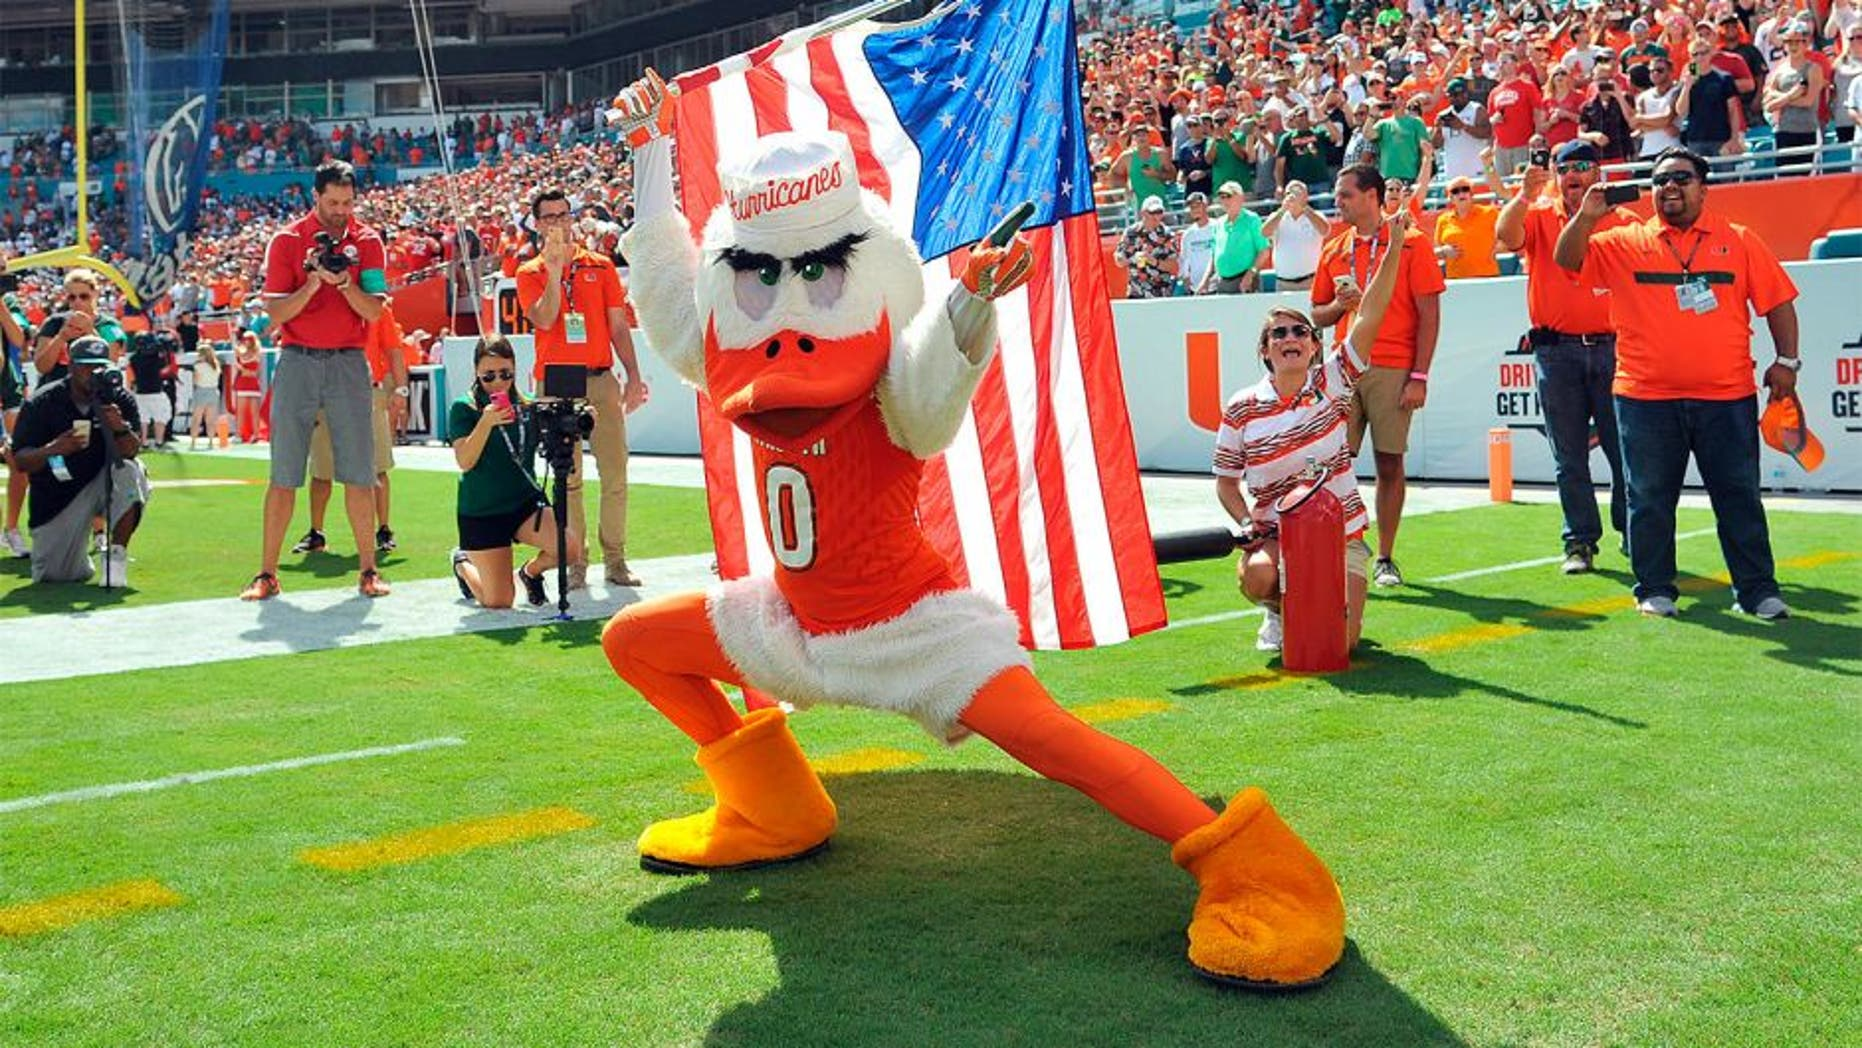 Sep 19, 2015; Miami Gardens, FL, USA; Miami Hurricanes mascot Sebastian carries the American flag before a game against Nebraska Cornhuskers at Sun Life Stadium. Miami won 36-33. Mandatory Credit: Steve Mitchell-USA TODAY Sports